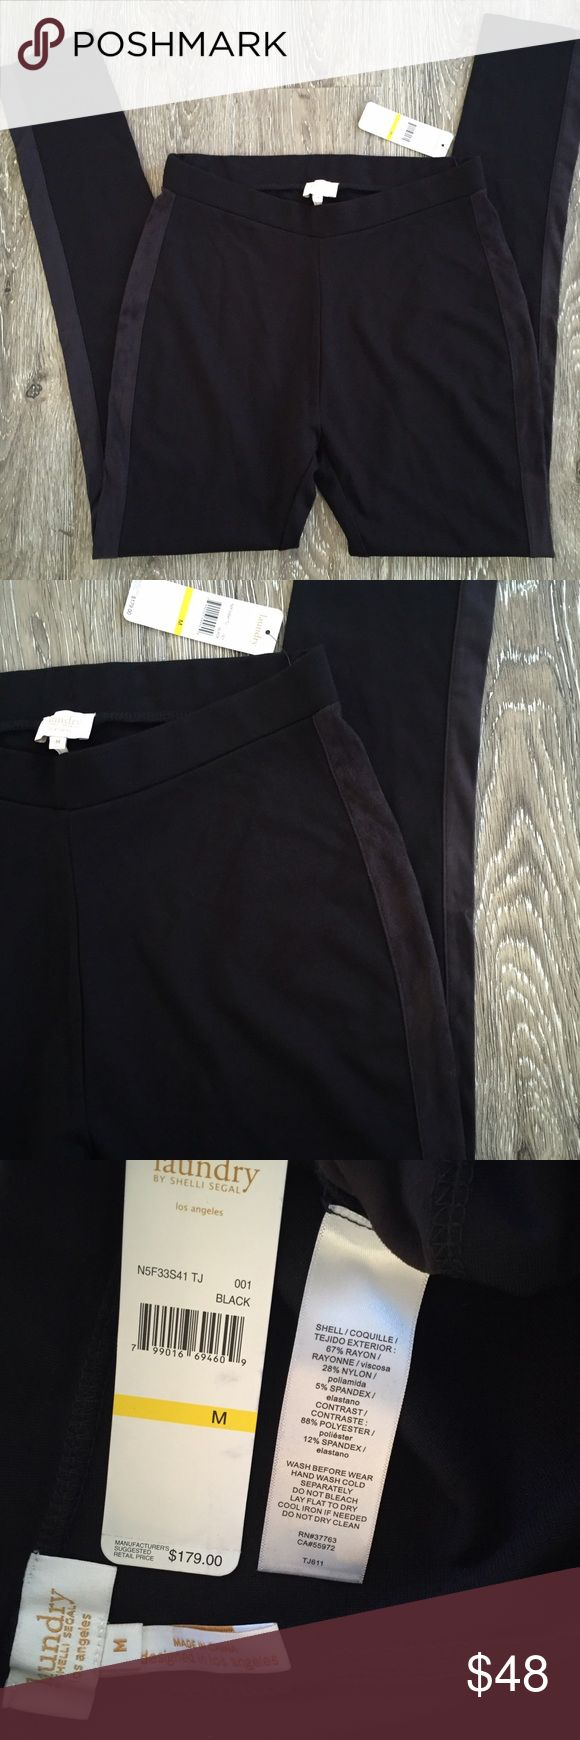 Laundry by shelli segal leggings Laundry by shelli segal black and charcoal leggings. The charcoal stripe on the sides is a faux suede. Nwt size medium Laundry by Shelli Segal Pants Leggings